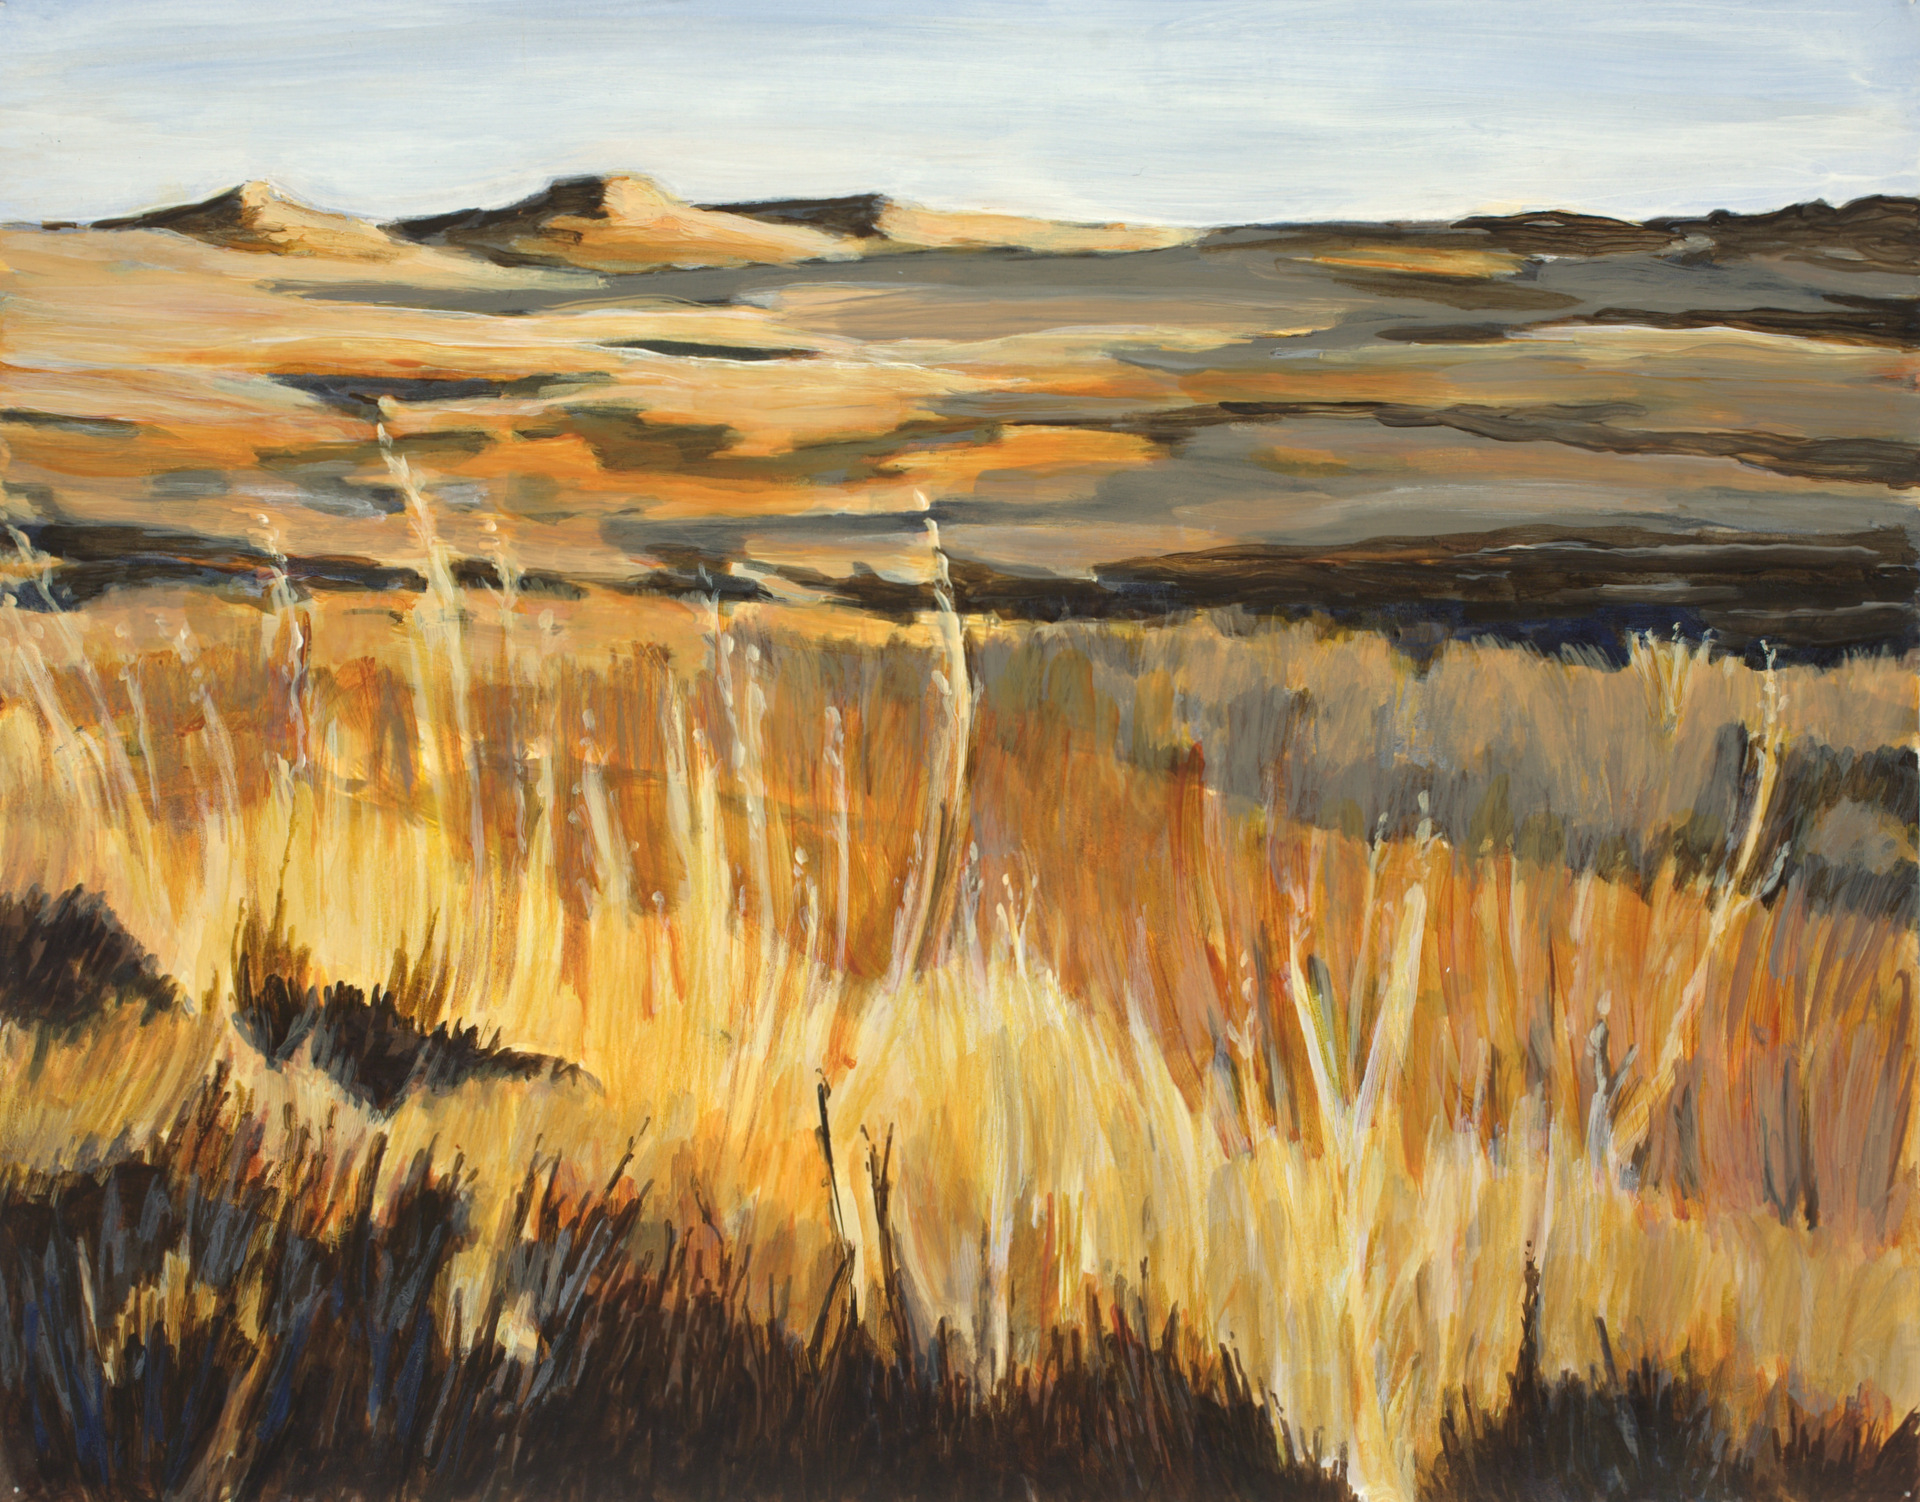 Late Afternoon in the Fossil Beds-11x14 (17x21 with mat, frame & plexiglass)